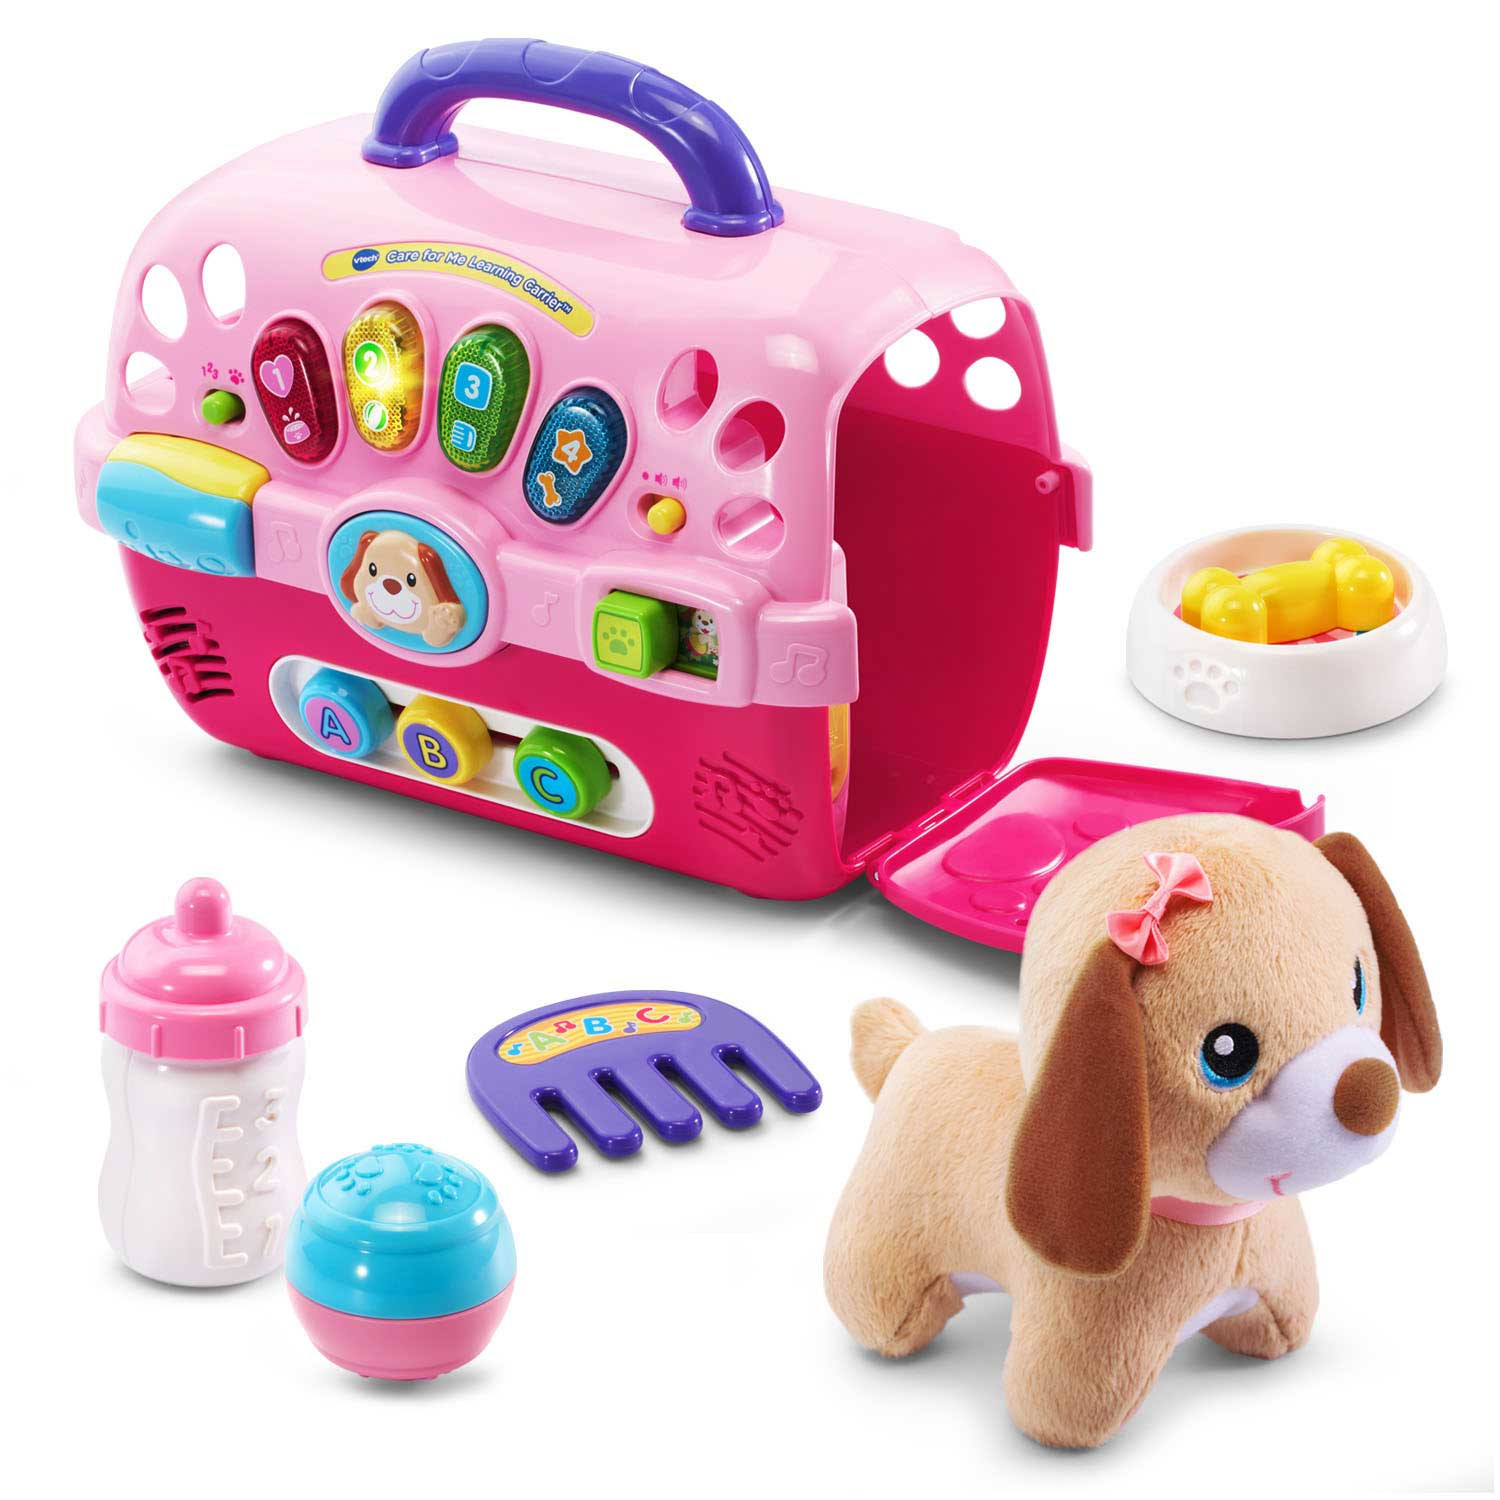 VTech Adds Exciting New Products to Award Winning Baby Infant